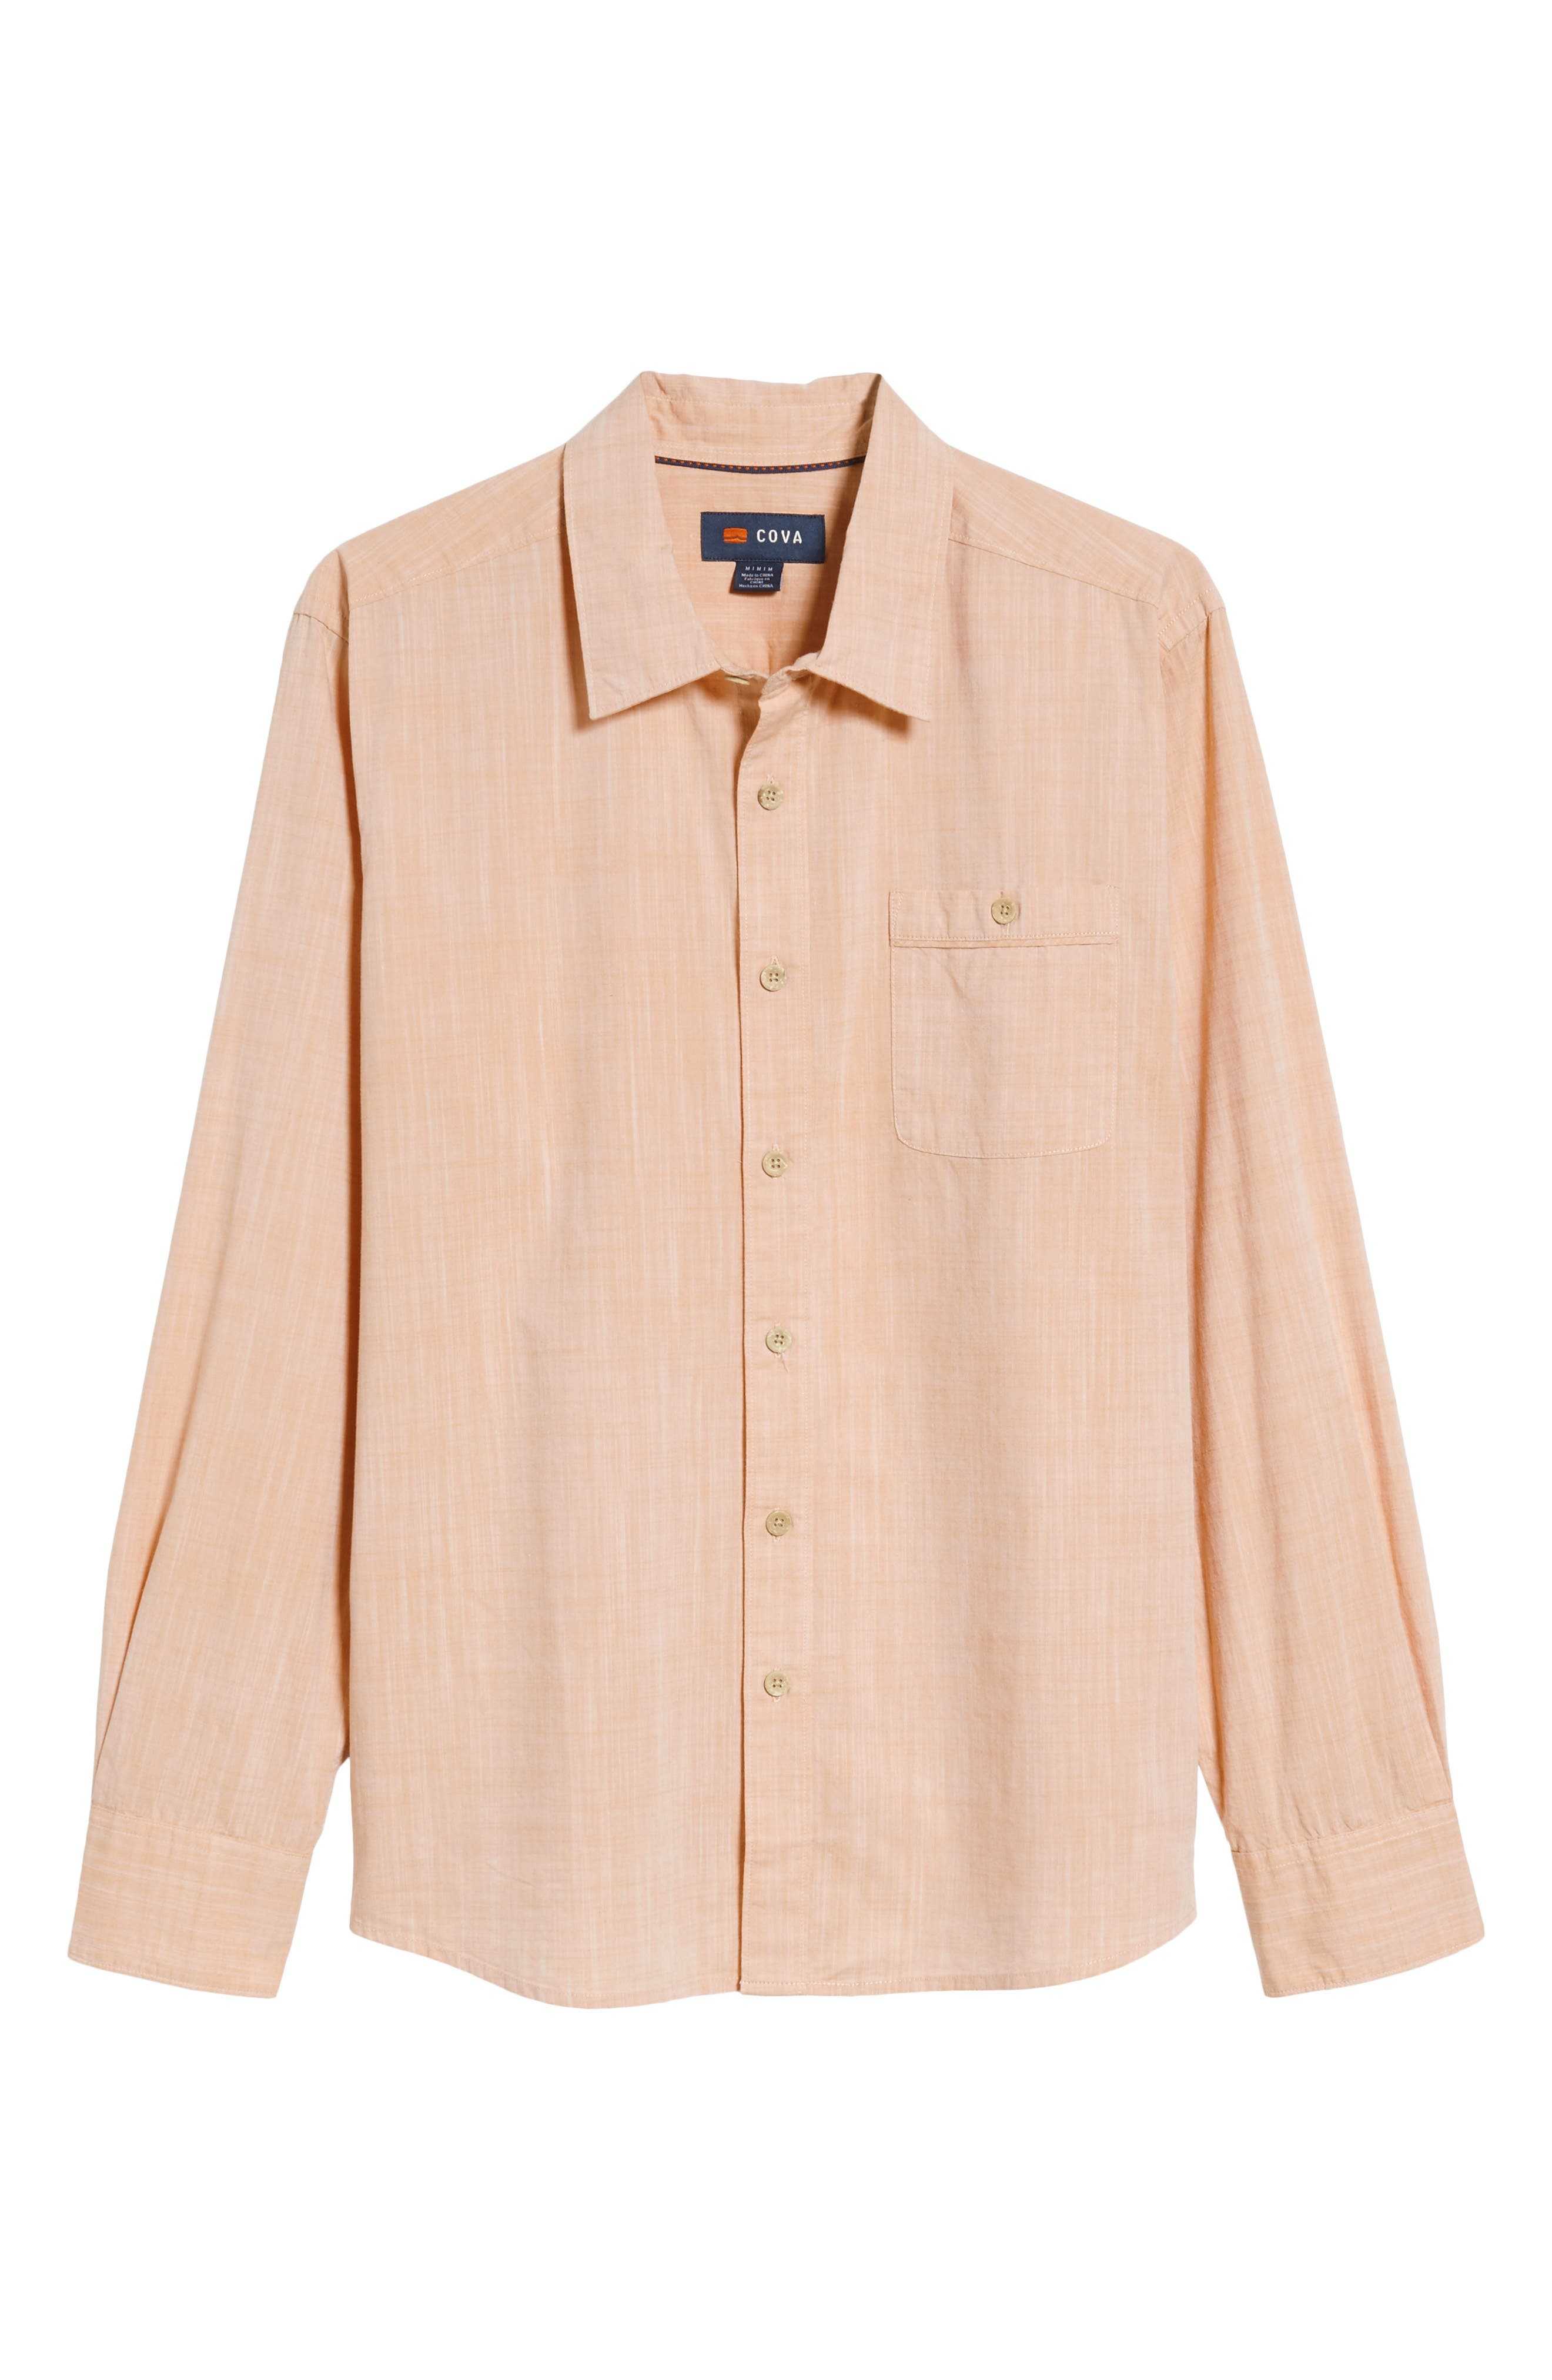 Mai Tai Regular Fit Sport Shirt,                             Alternate thumbnail 6, color,                             Papaya